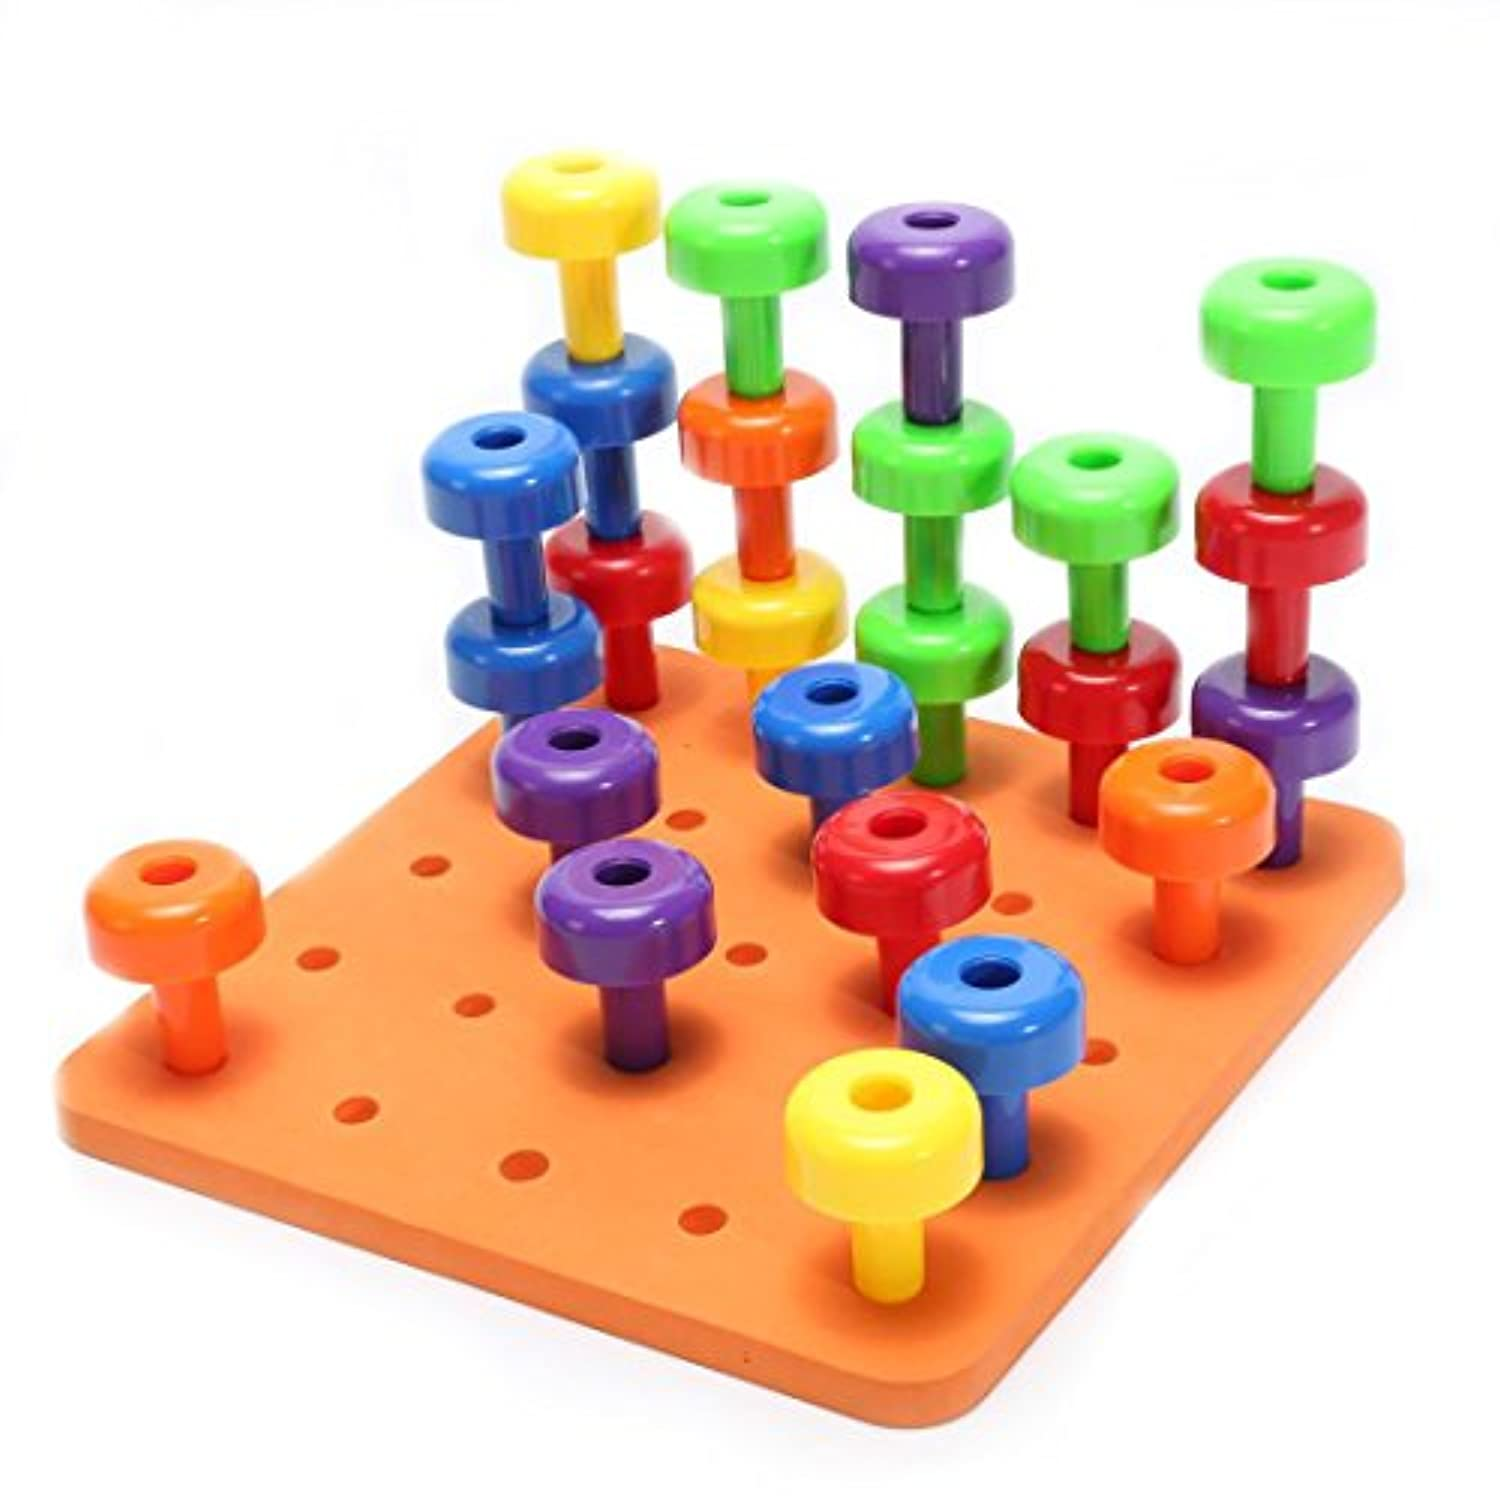 E-SCENERY 30Pcs Peg Board Set Activity Pegboard Motor Skills Toy for Toddlers and Preschoolers 30 Pegs in Board for Colour Recognition Sorting Counting